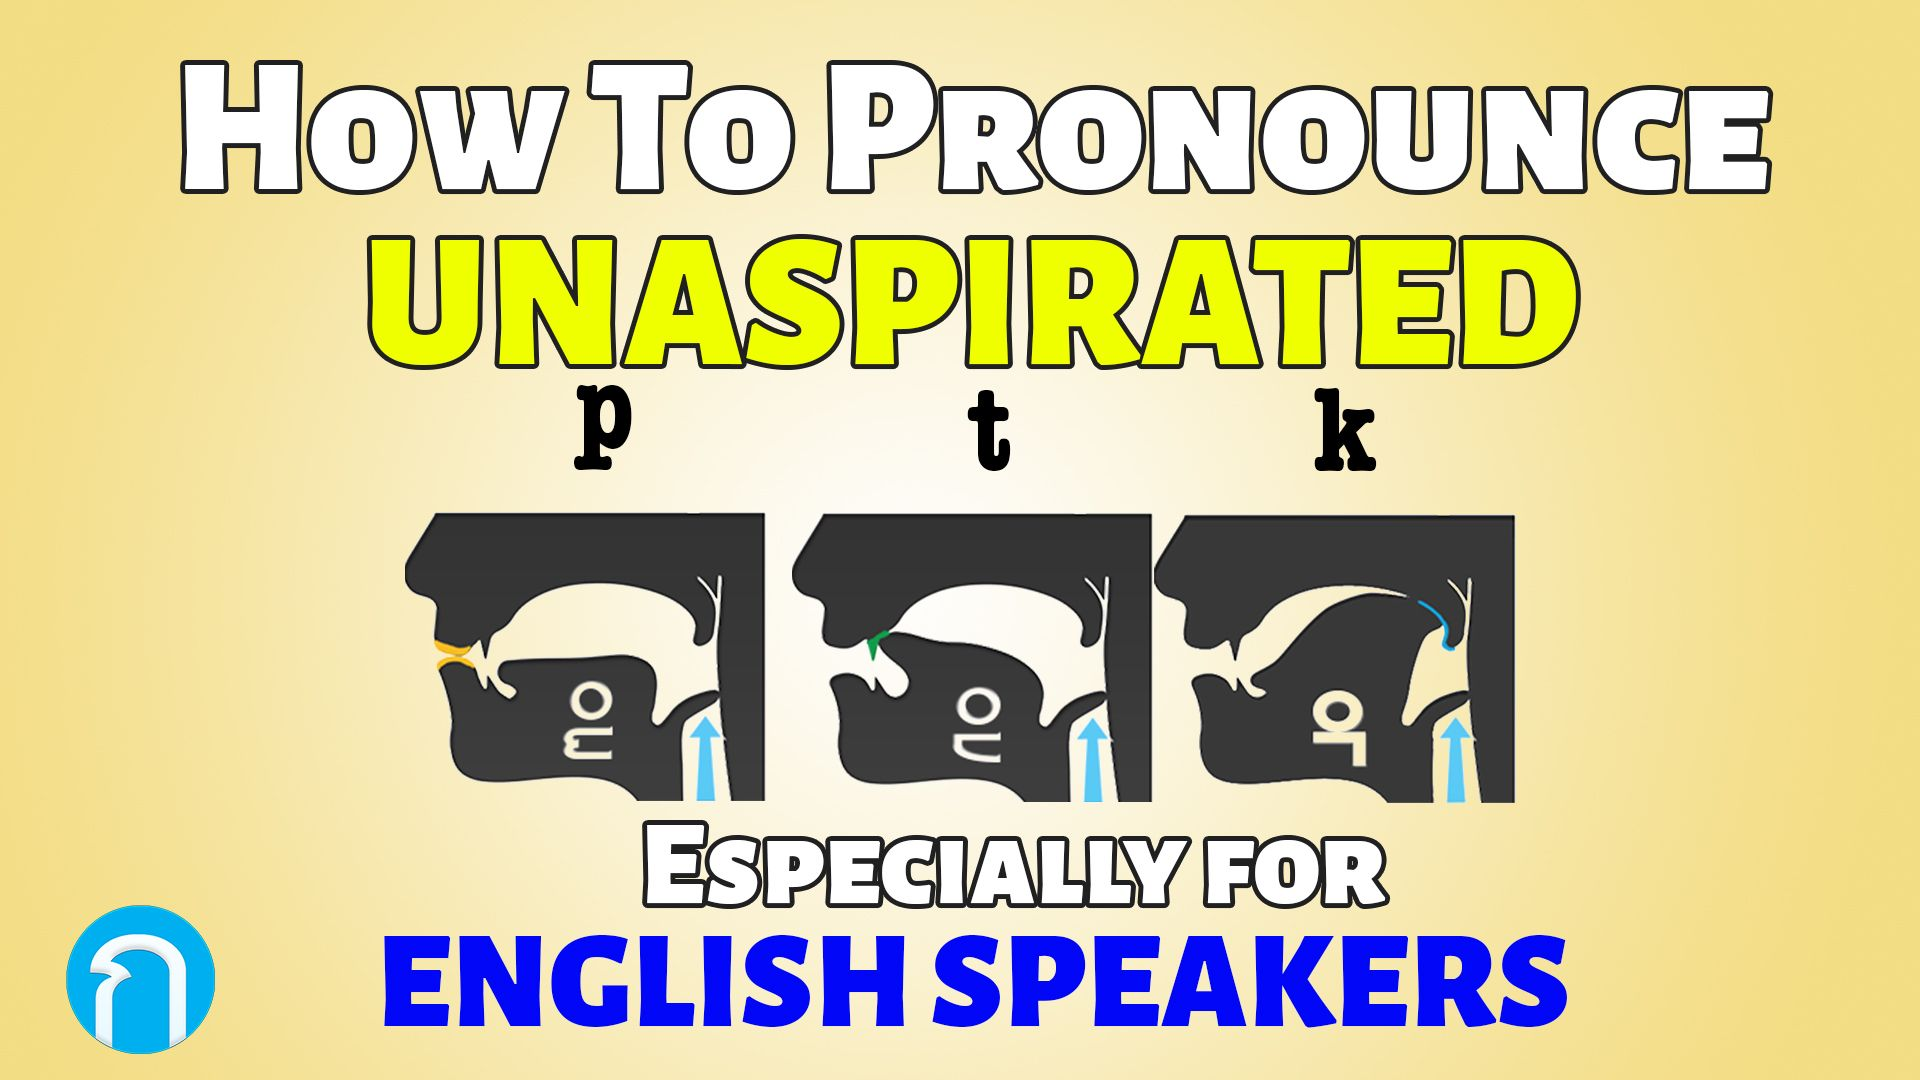 How to Pronounce Unaspirated 'p', 't' and 'k' Correctly - Particularly for English Speakers